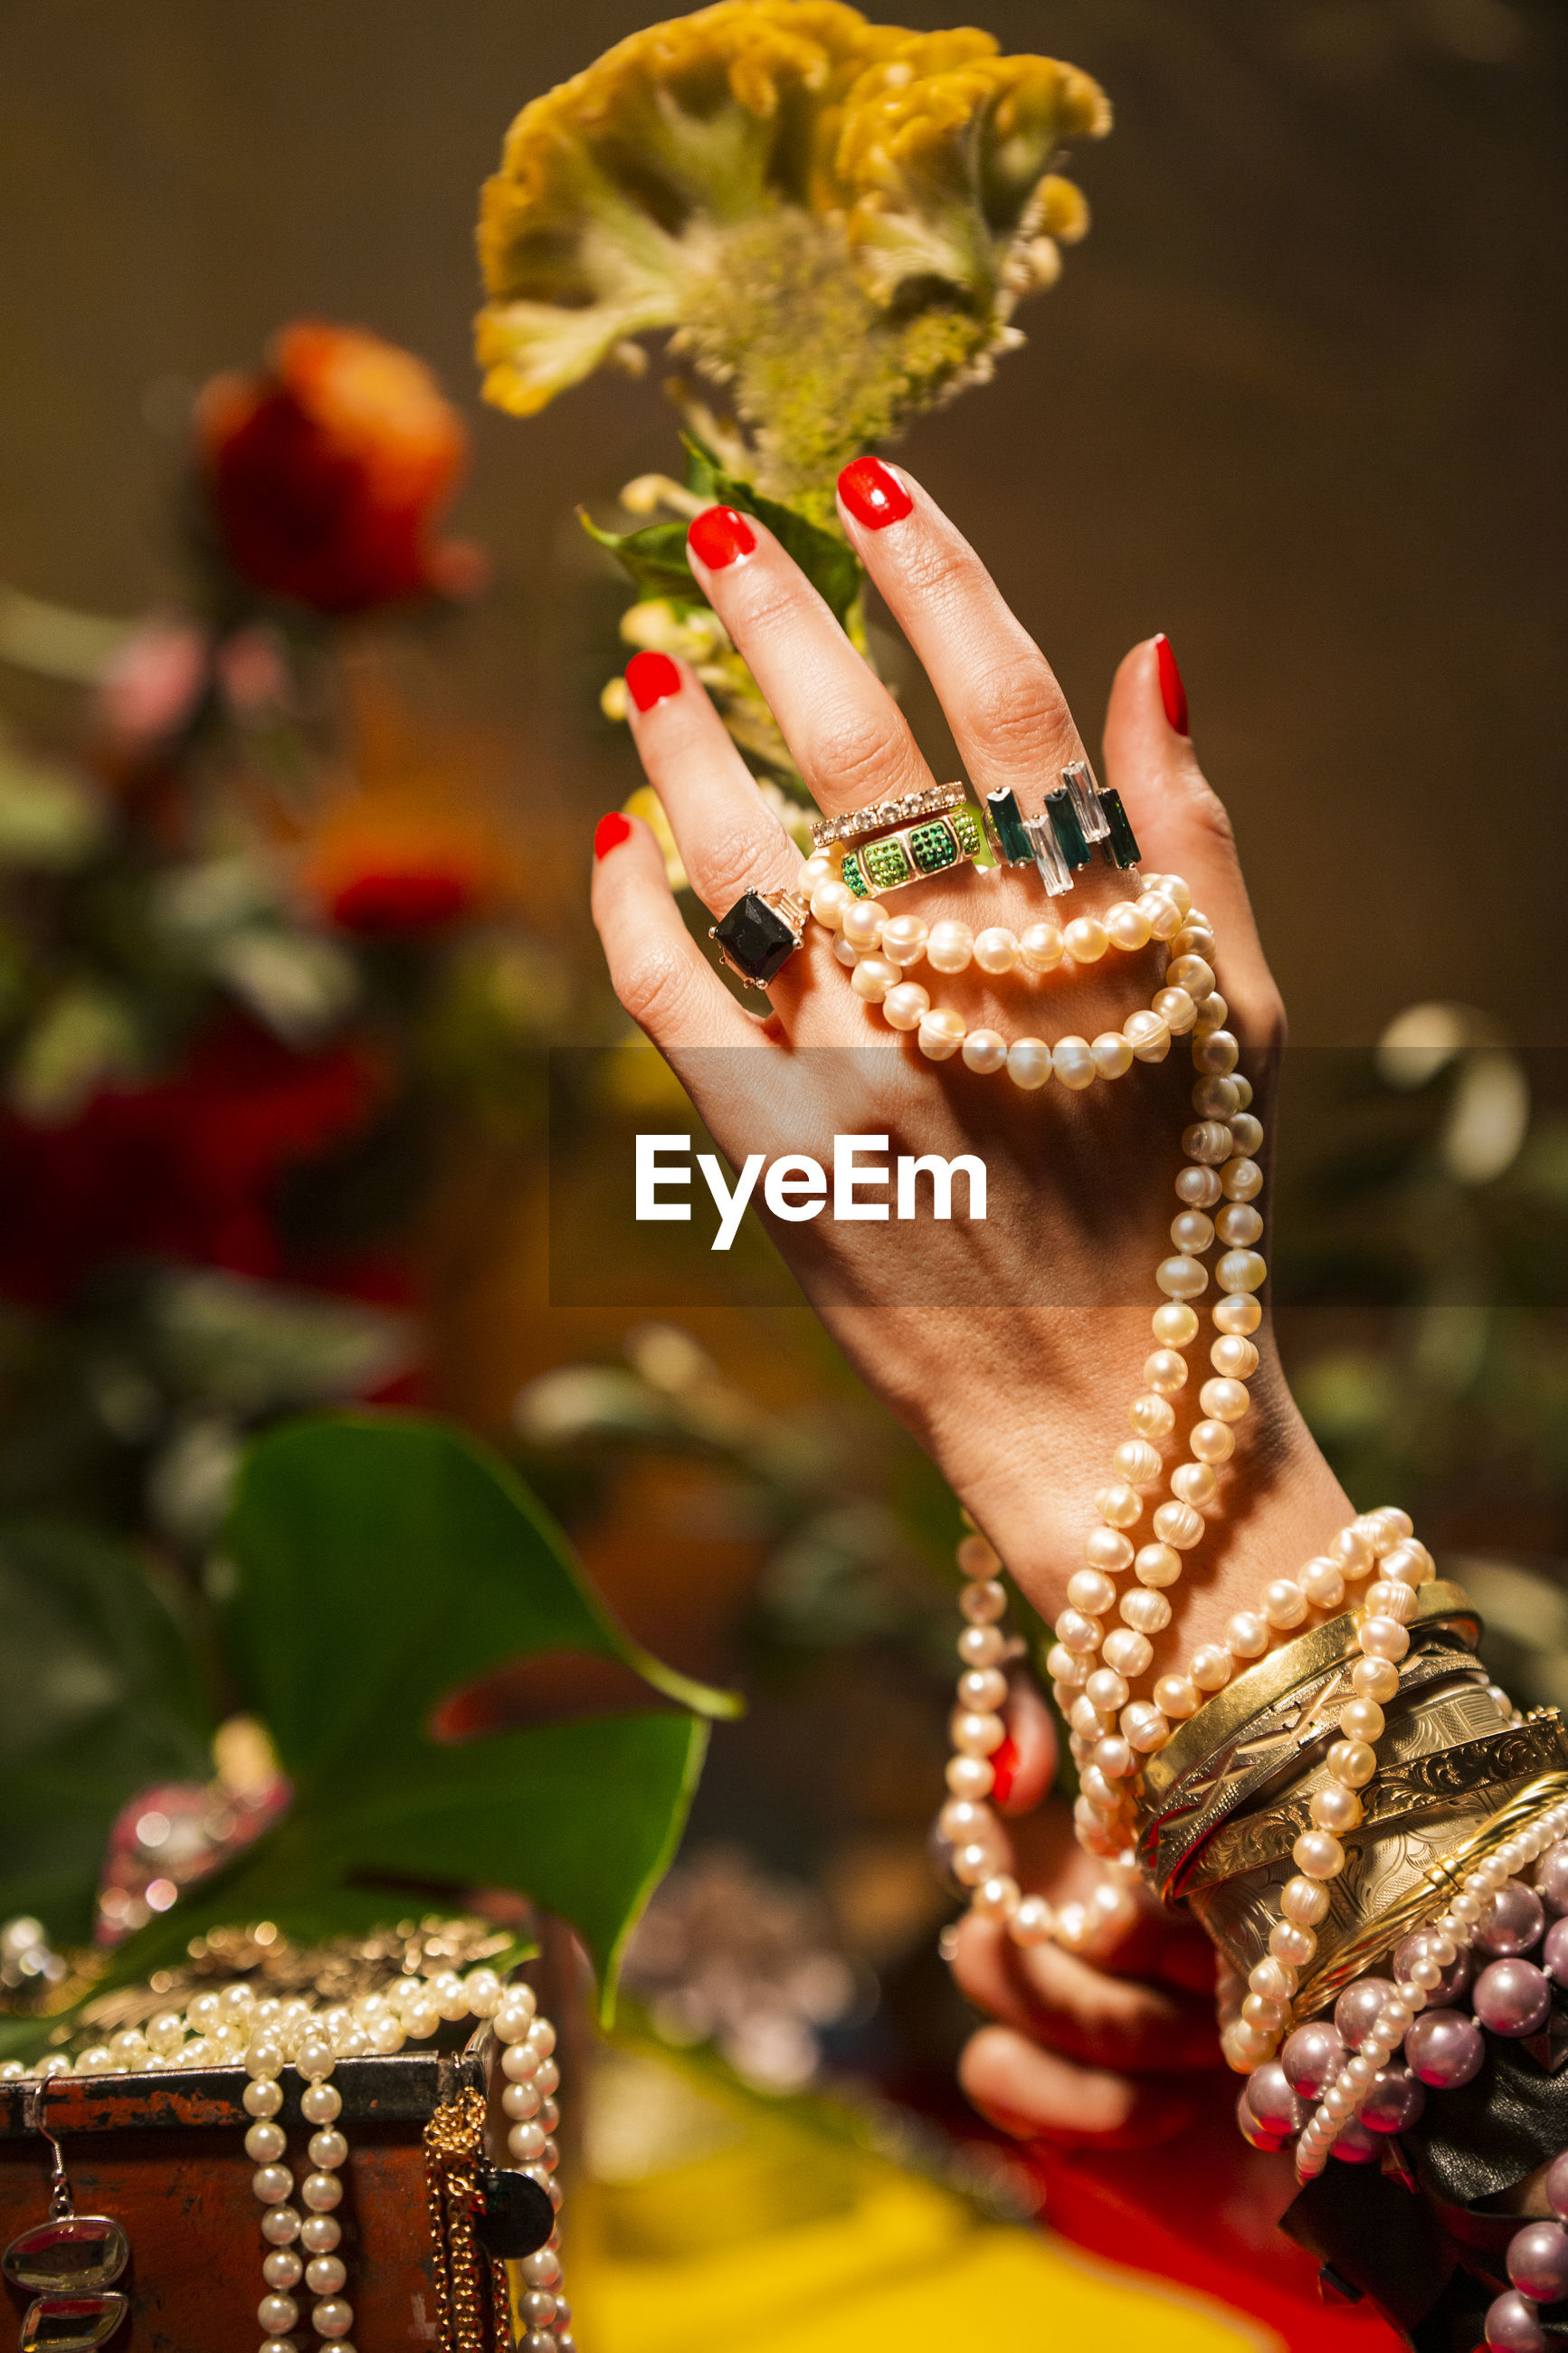 Cropped hand of woman with jewelry holding flower